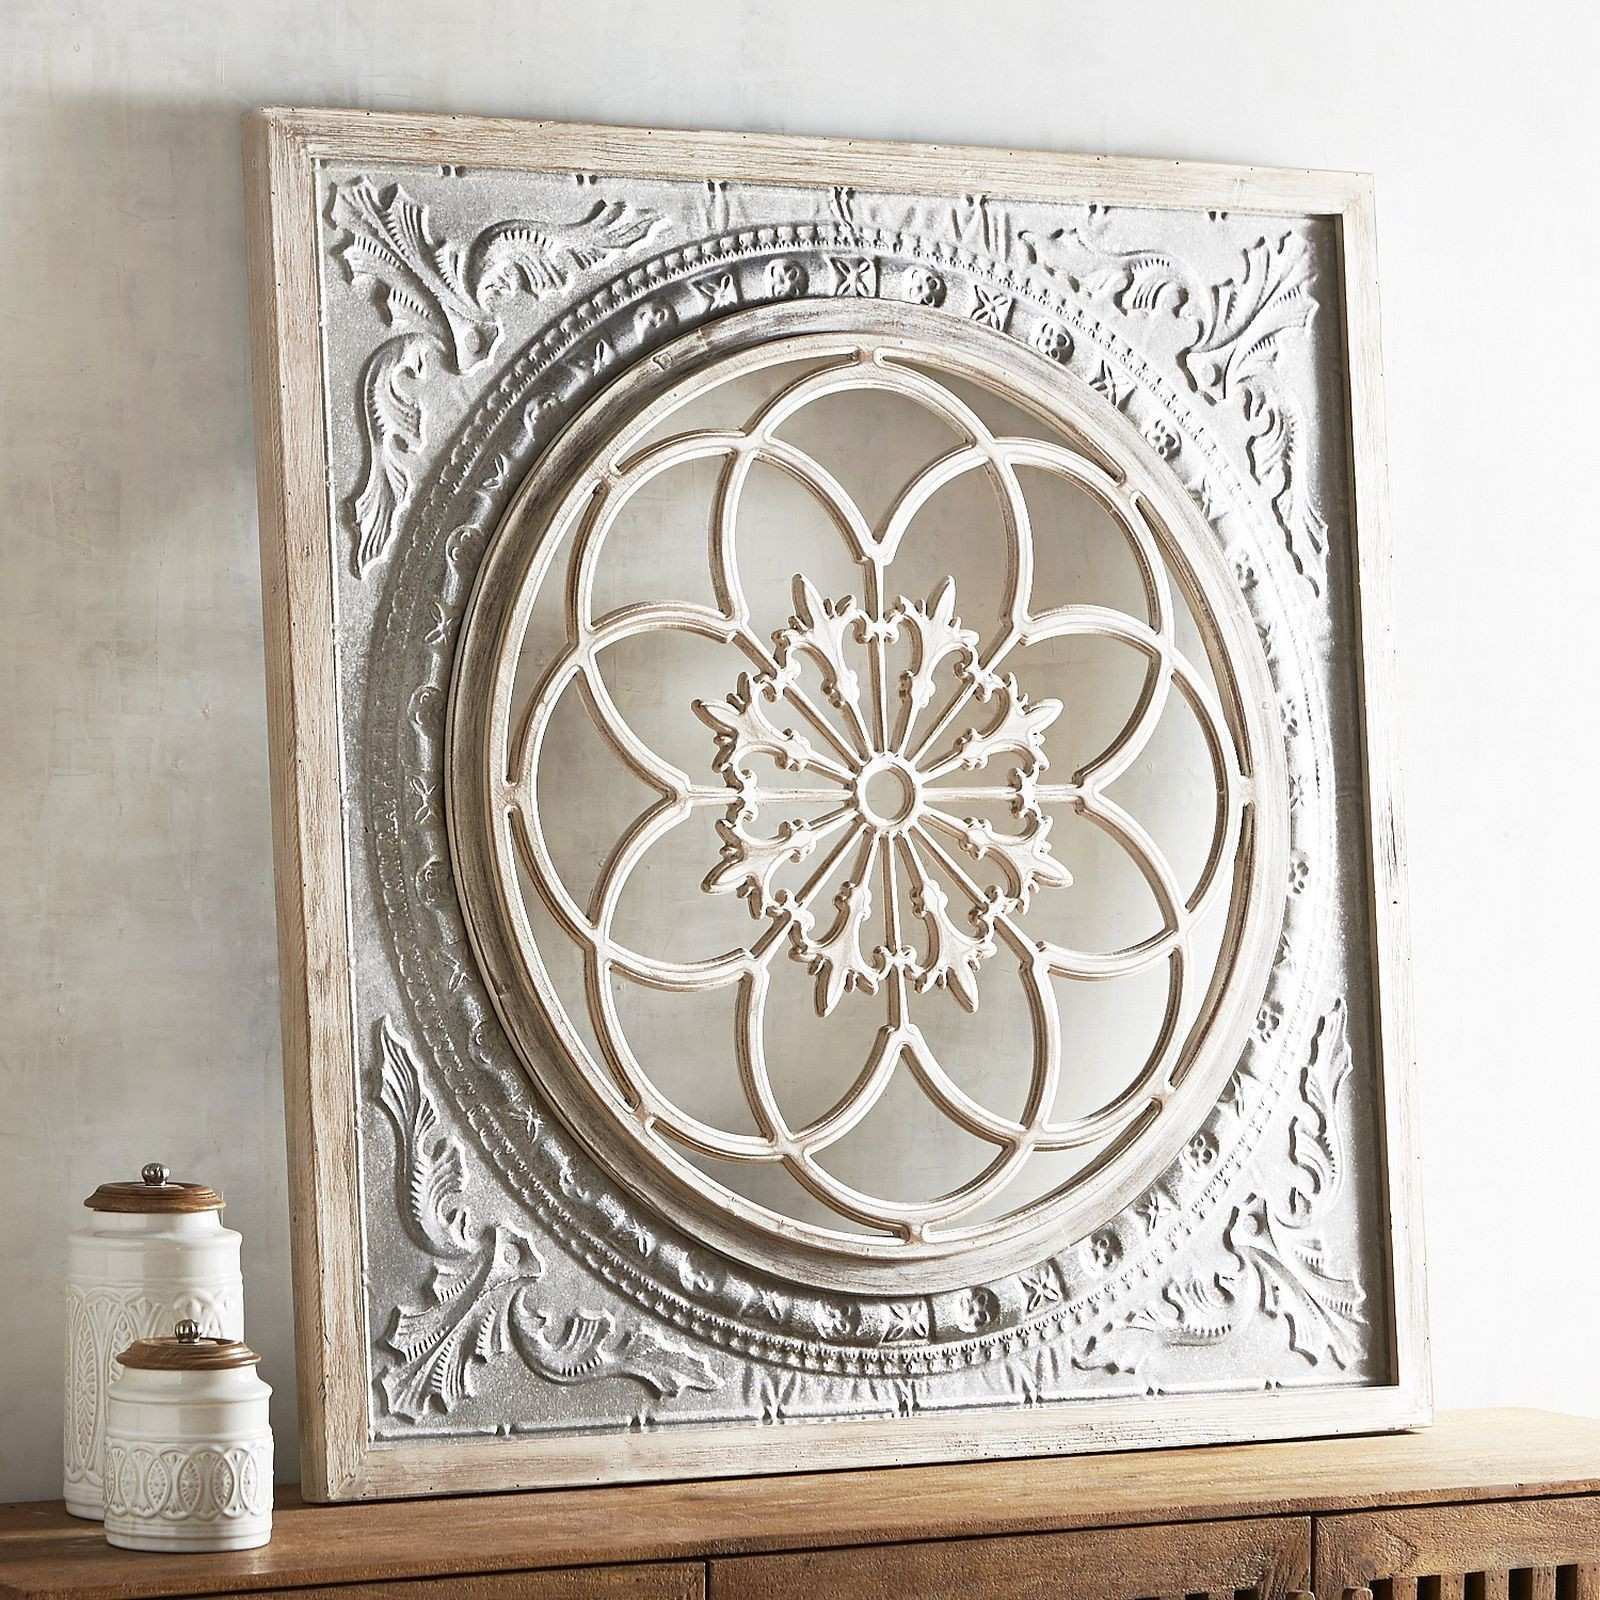 Pier 1 Imports Galvanized Medallion Wall Decor Design Wood